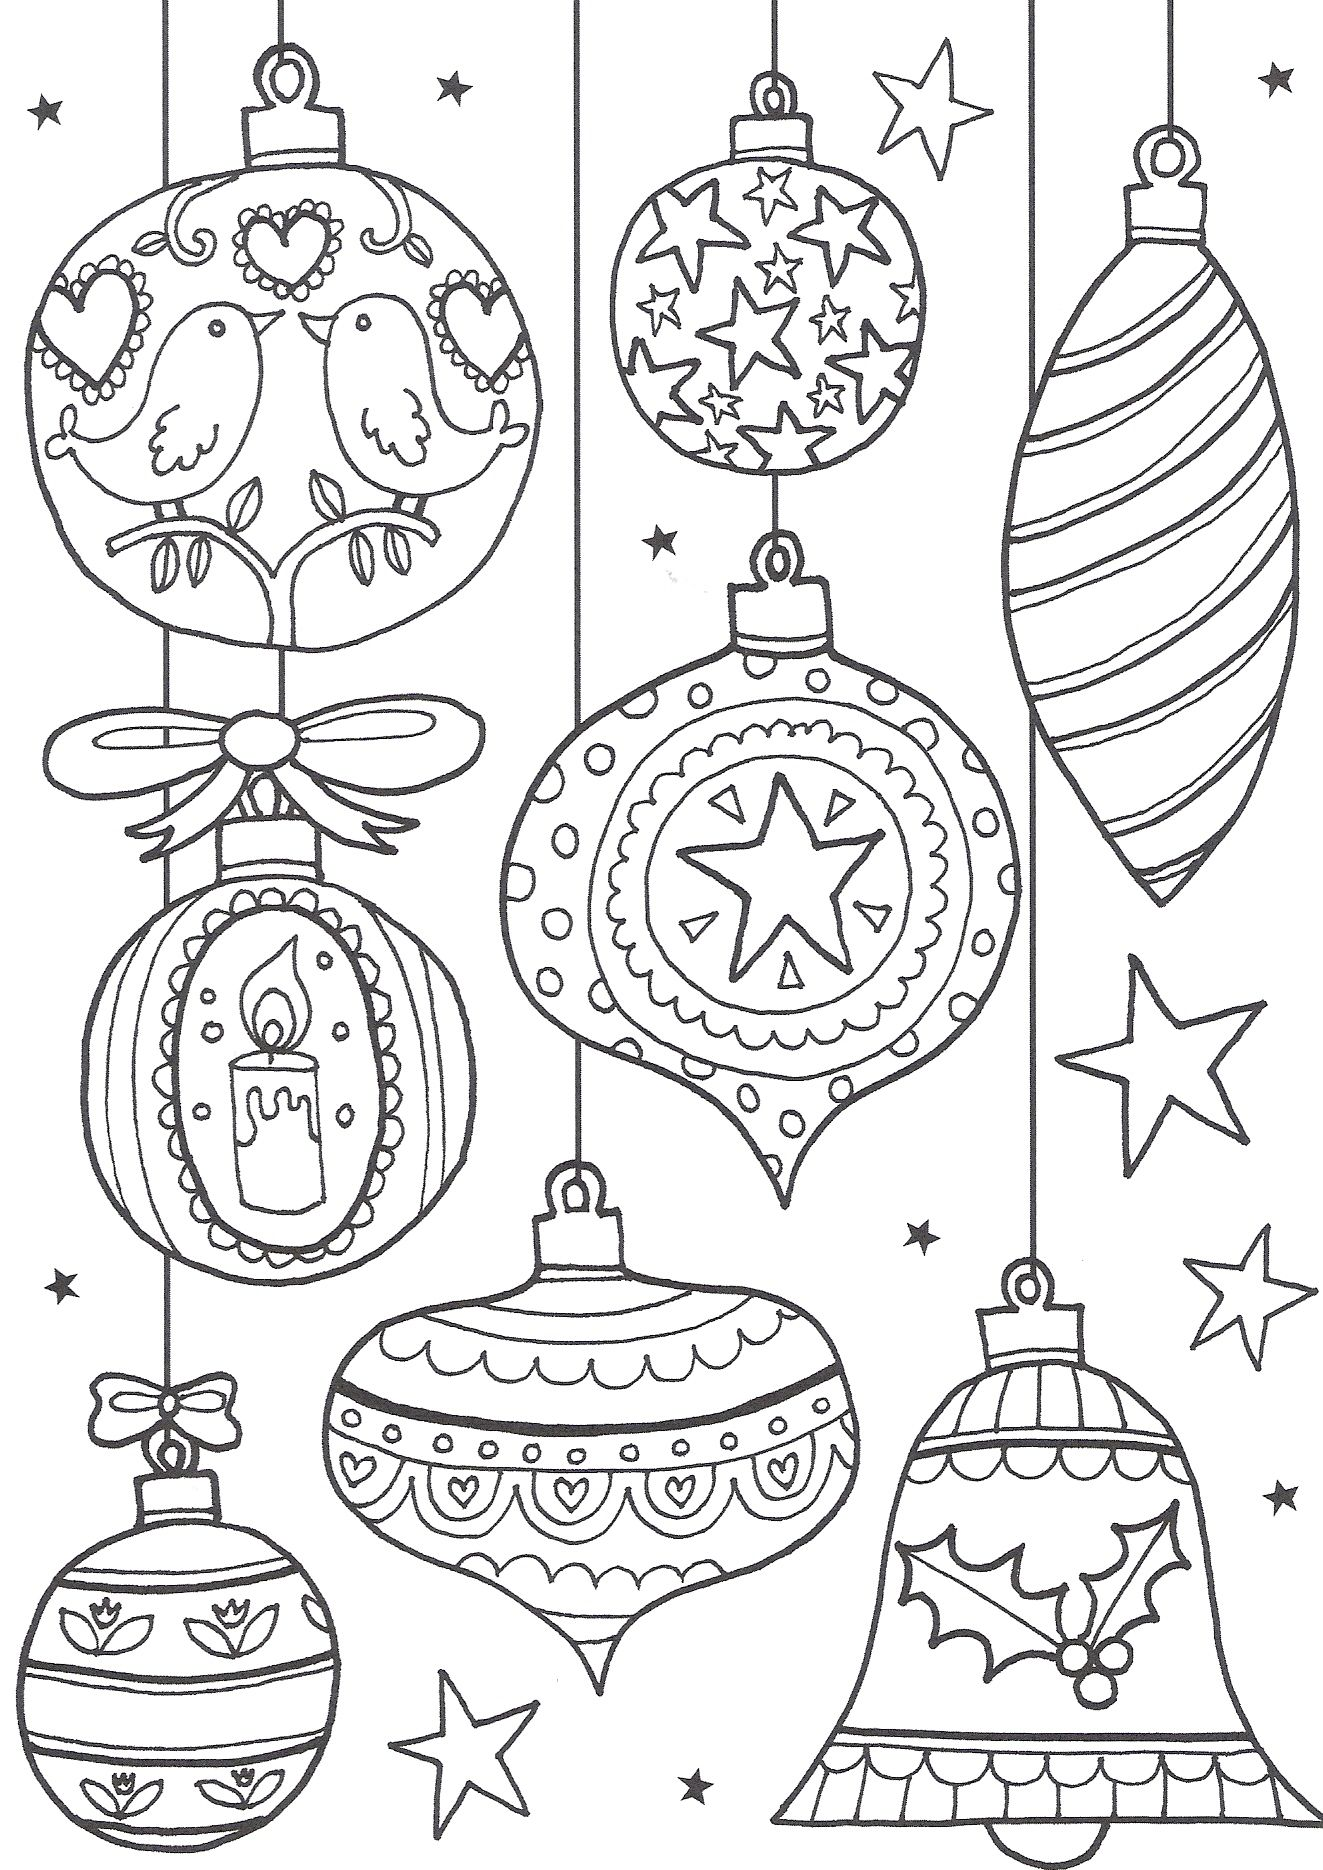 Christmas Coloring Books Pdf With Free Colouring Pages For Adults The Ultimate Roundup